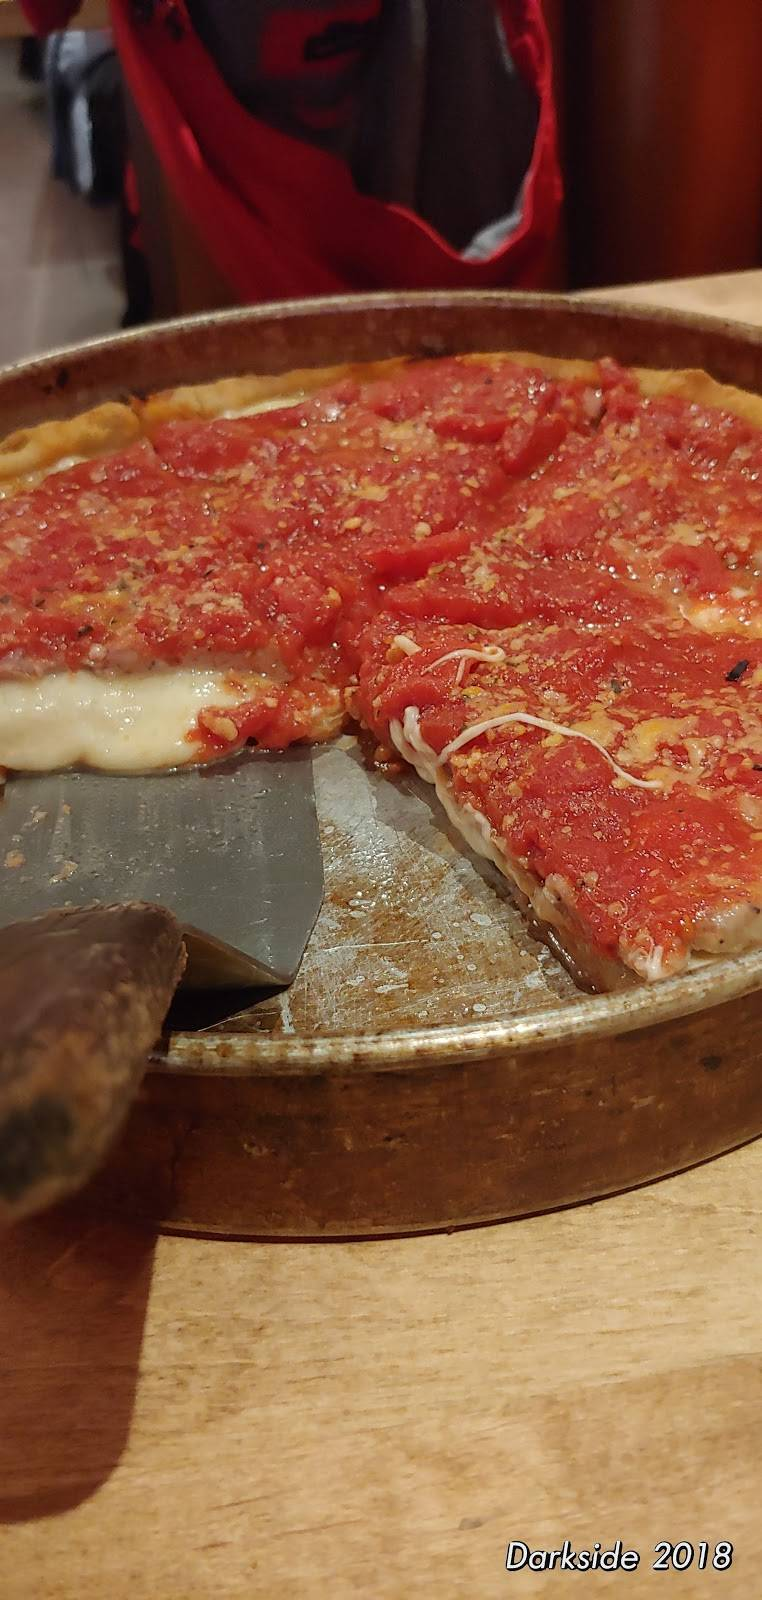 Lou Malnatis Pizzeria | meal delivery | 9501 W 171st St, Tinley Park, IL 60487, USA | 7084039700 OR +1 708-403-9700